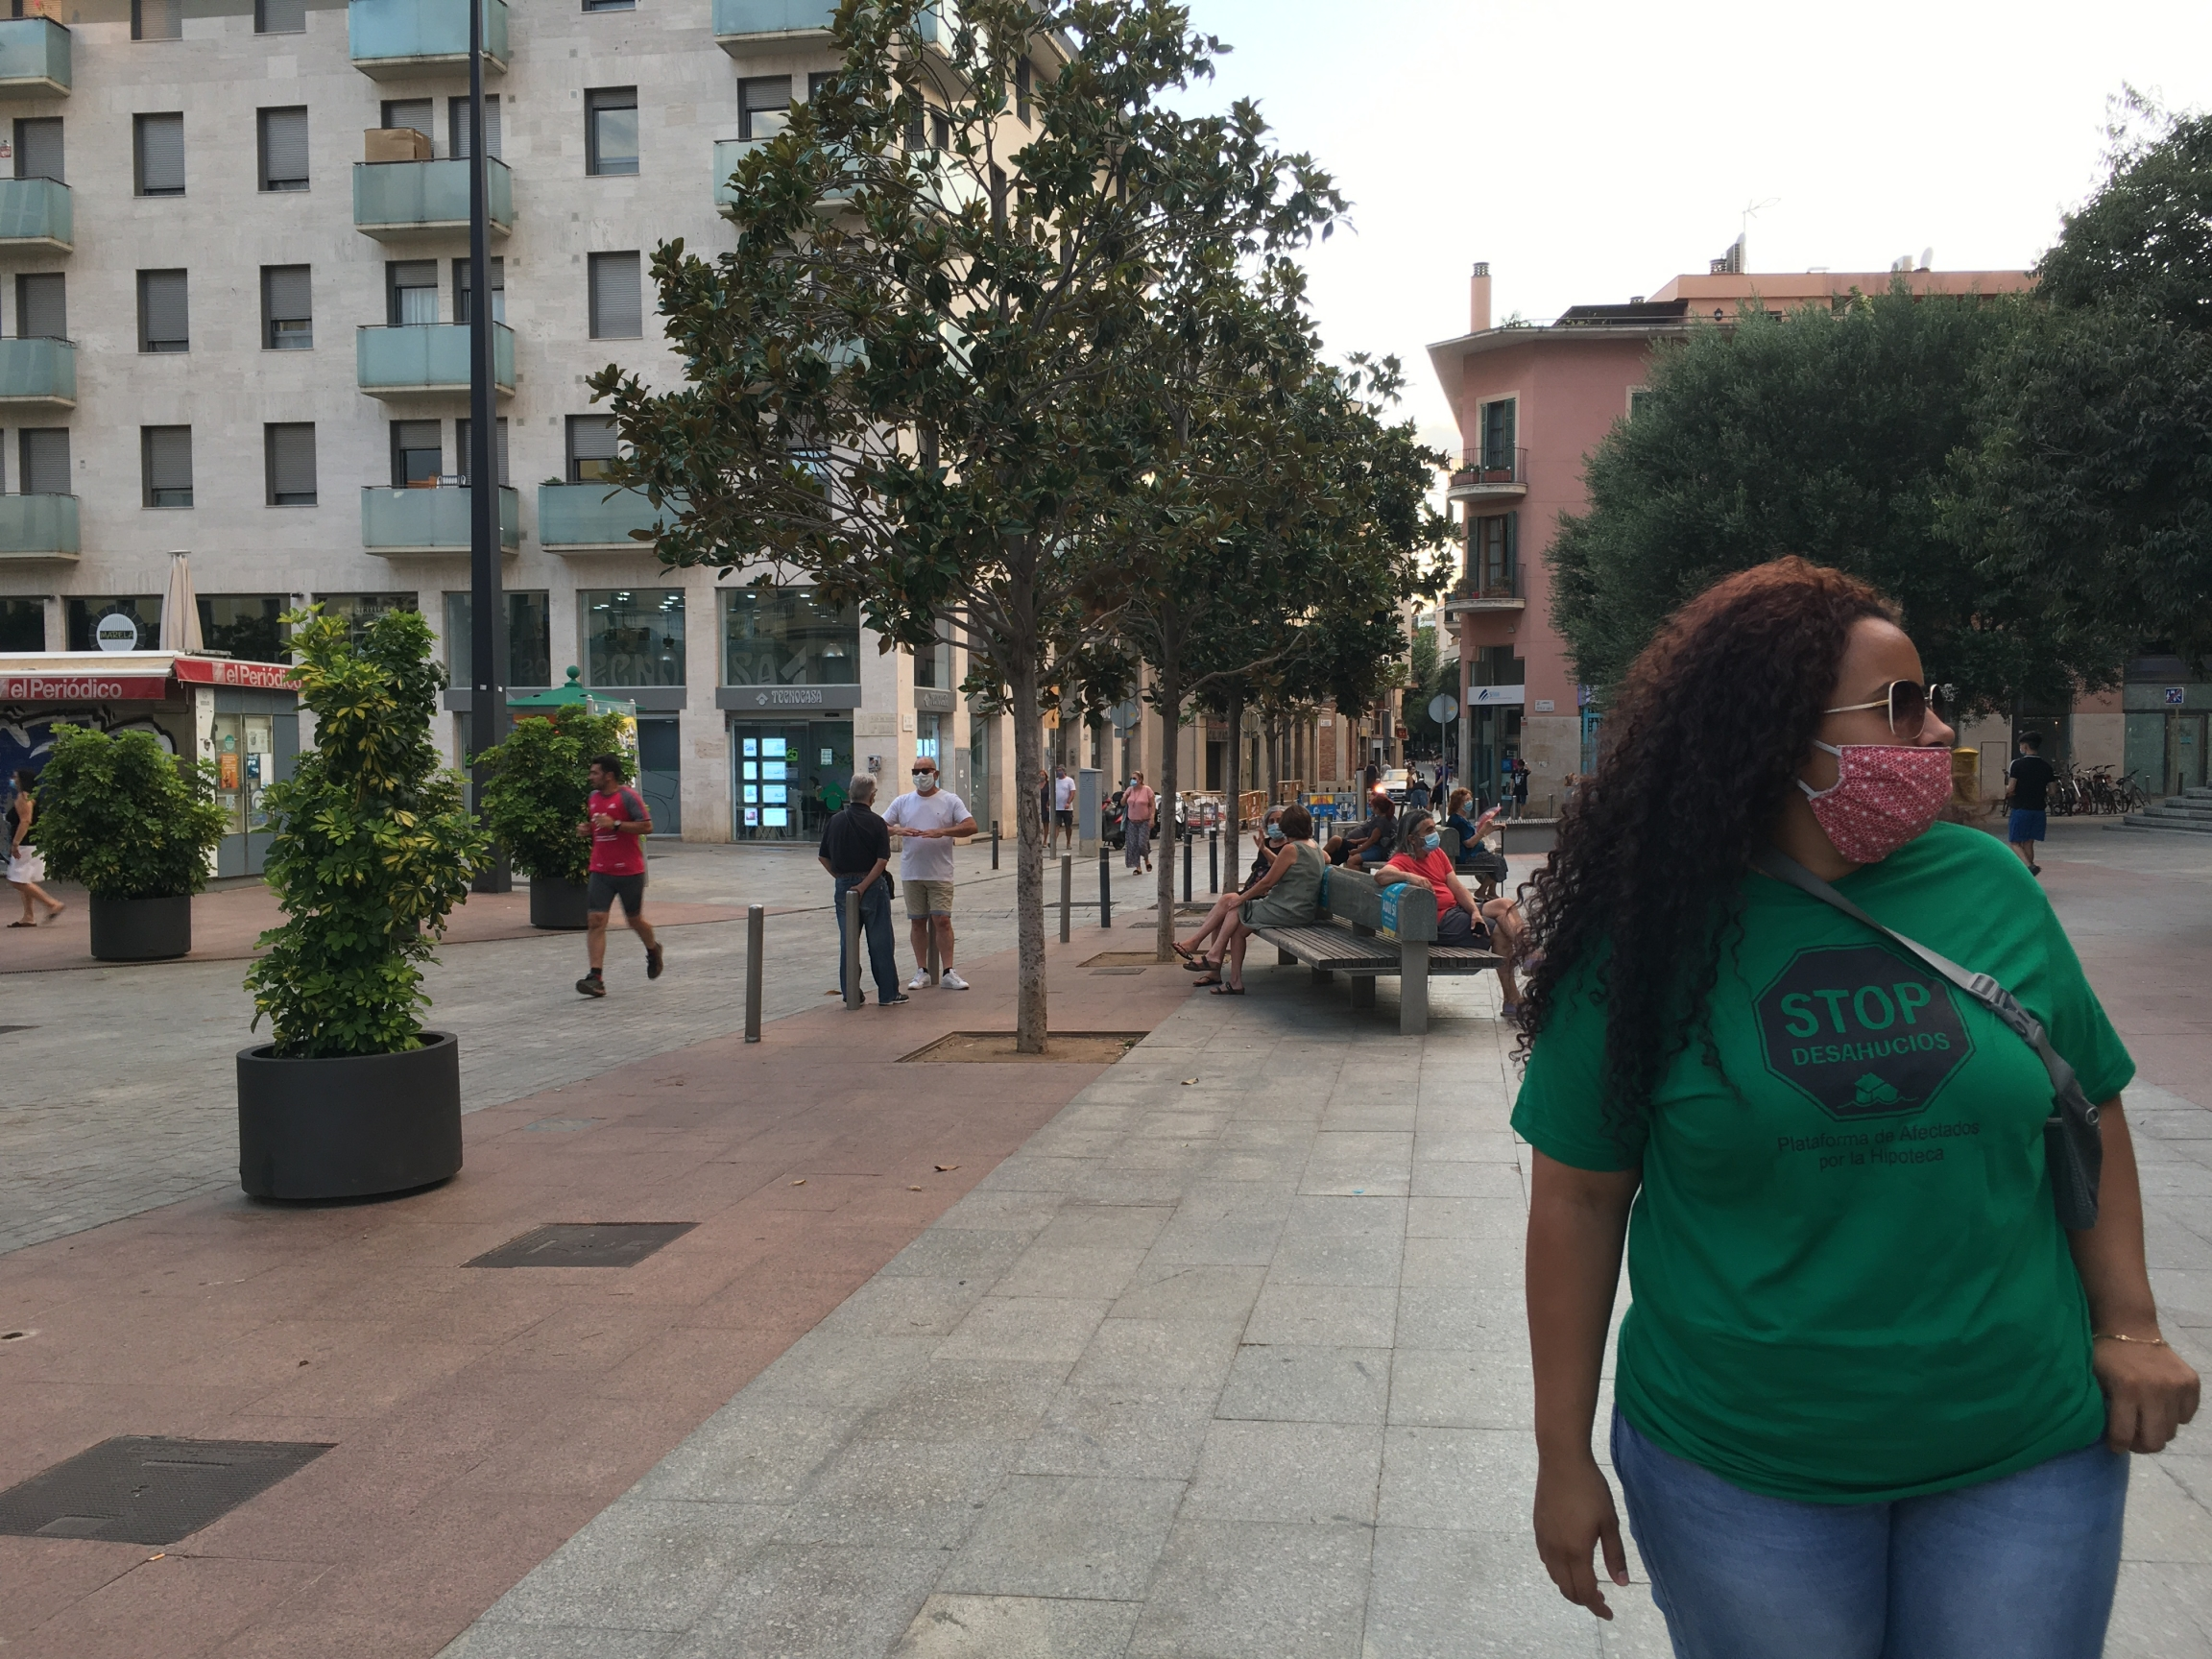 A woman with long brown, curly hair wears a green shirt and jeans as she walks down an urban street.